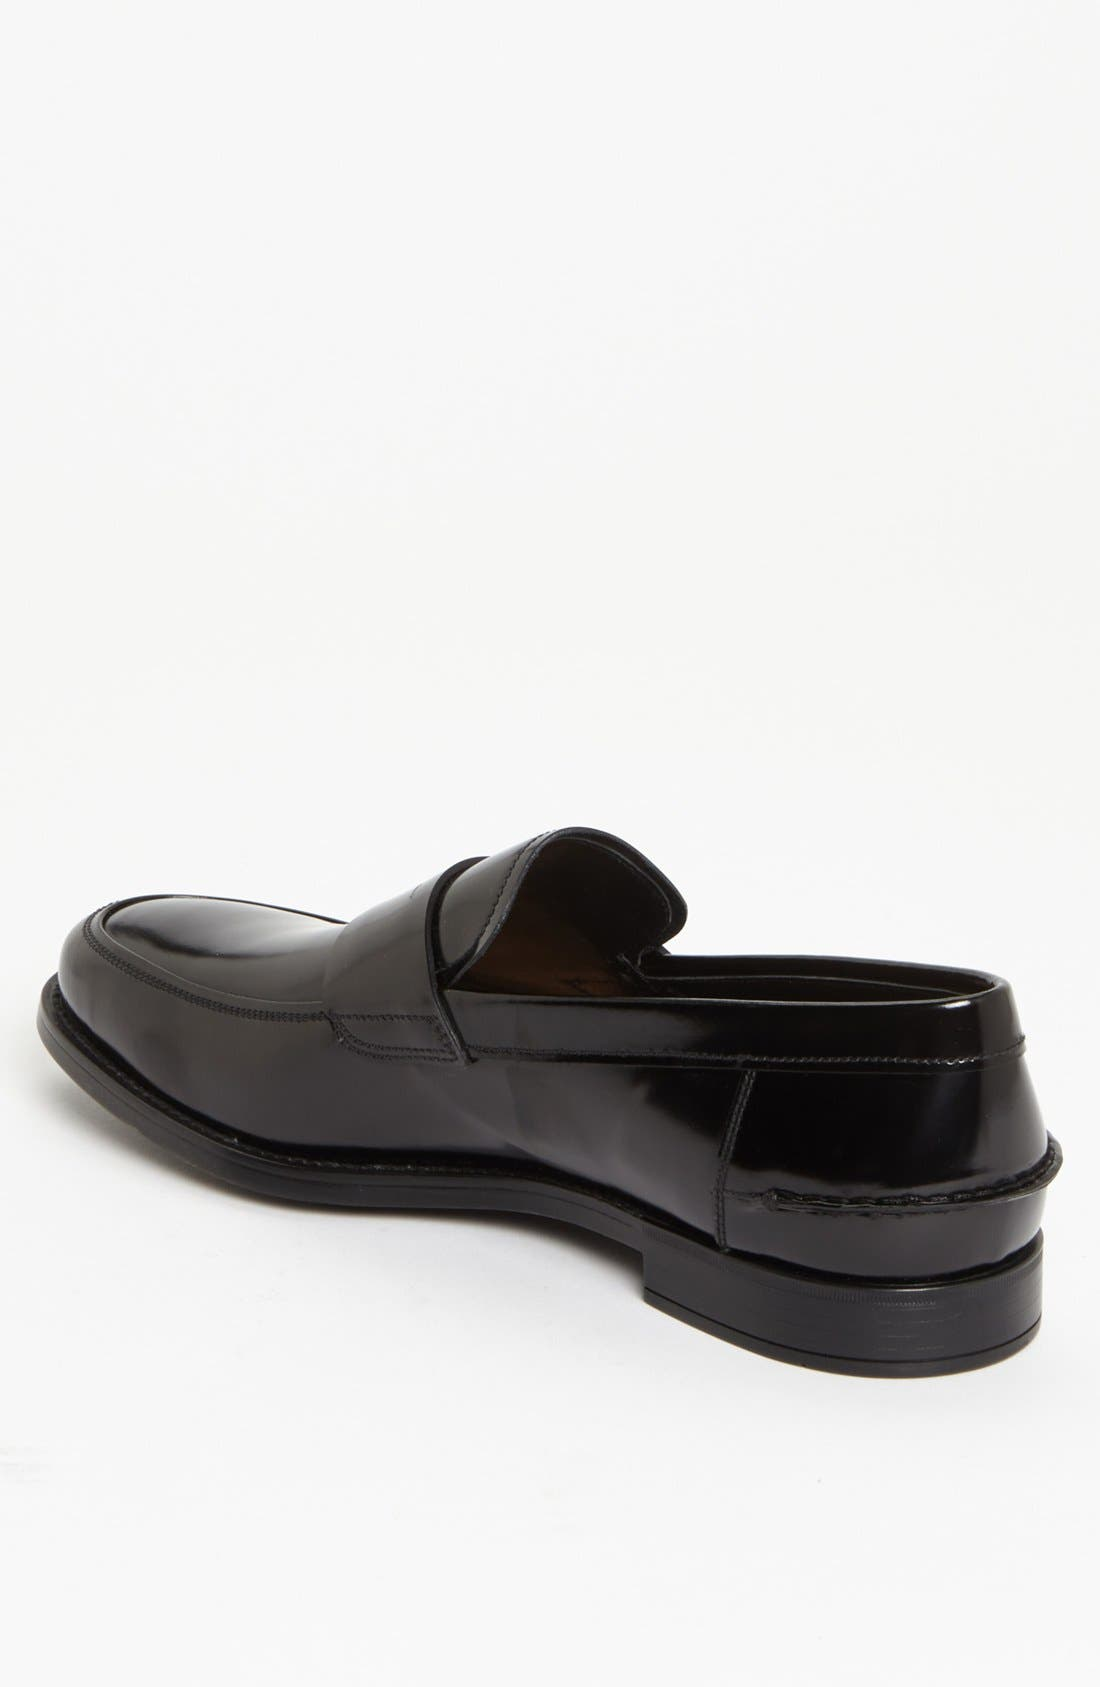 Alternate Image 2  - Prada Penny Loafer